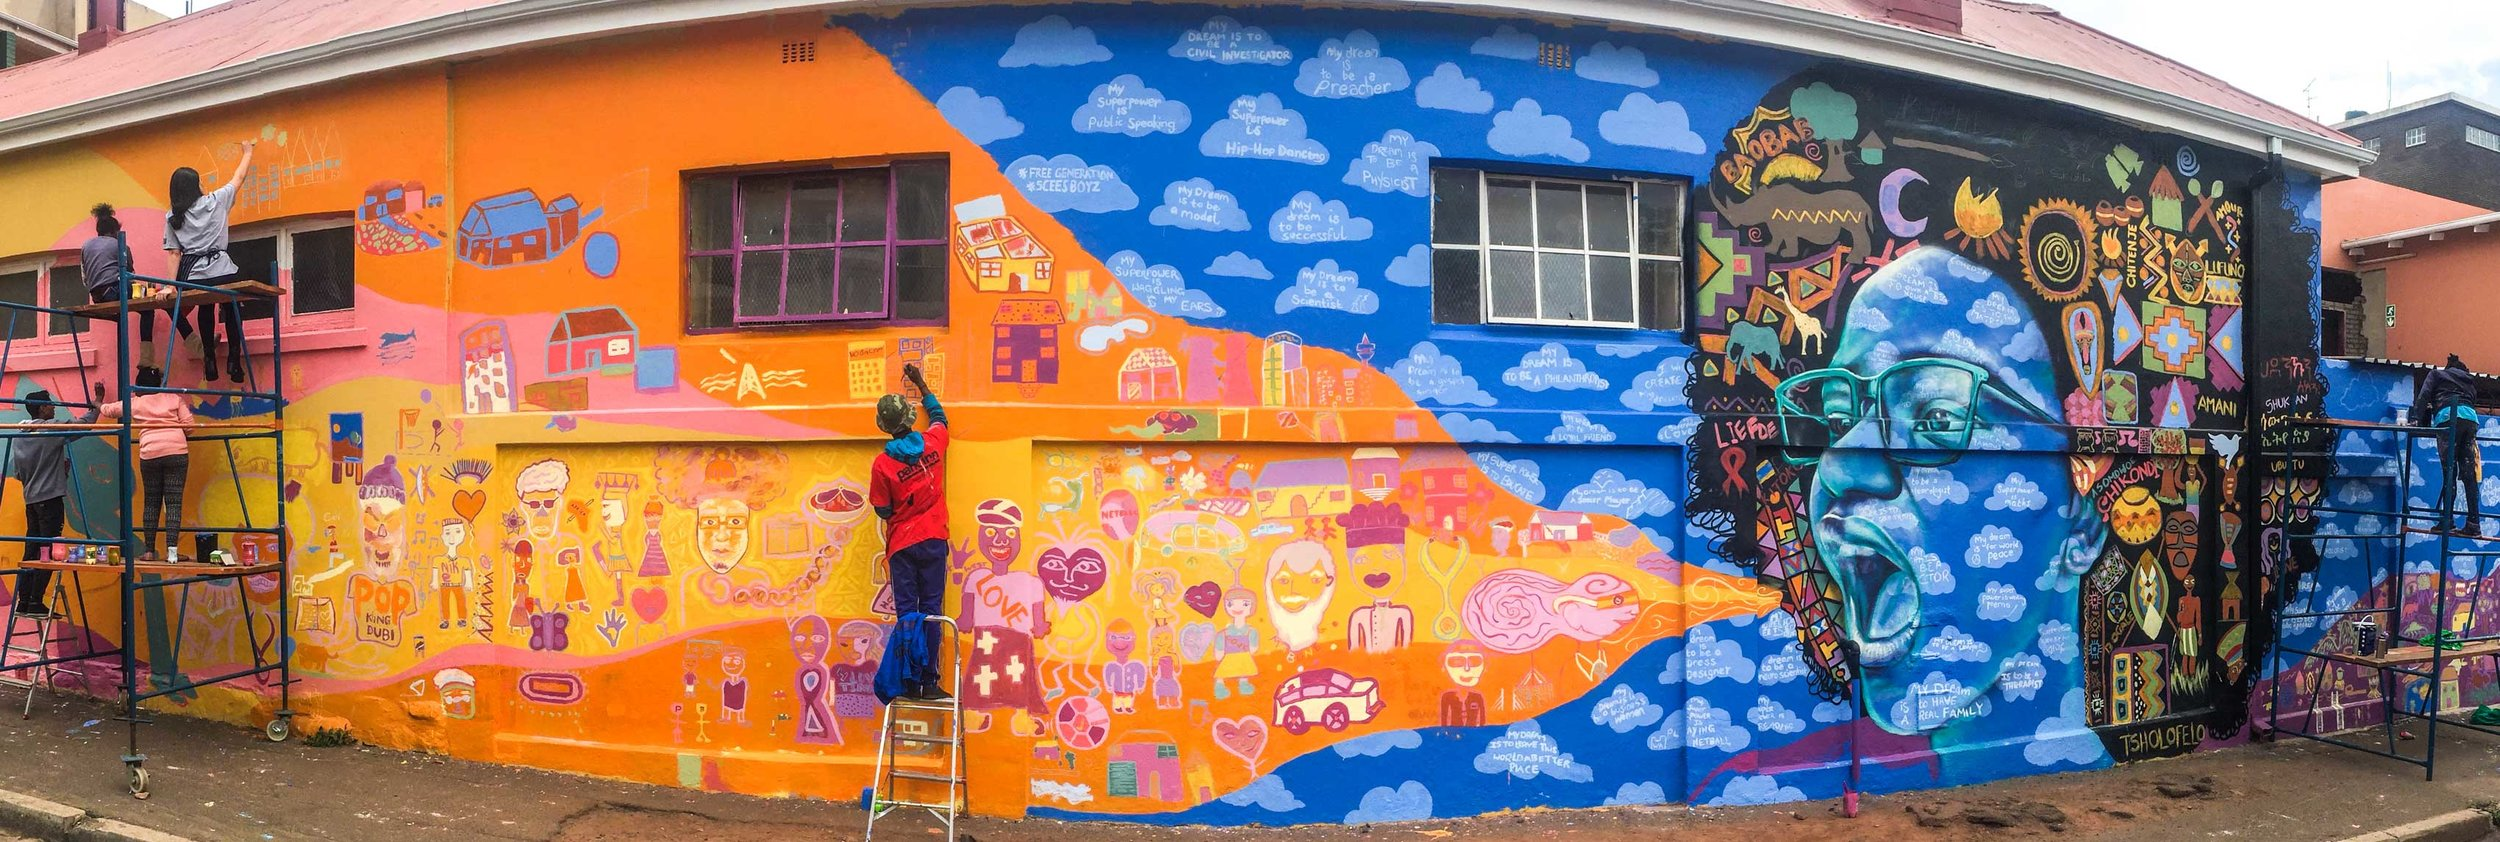 Joburg mural low res.jpg